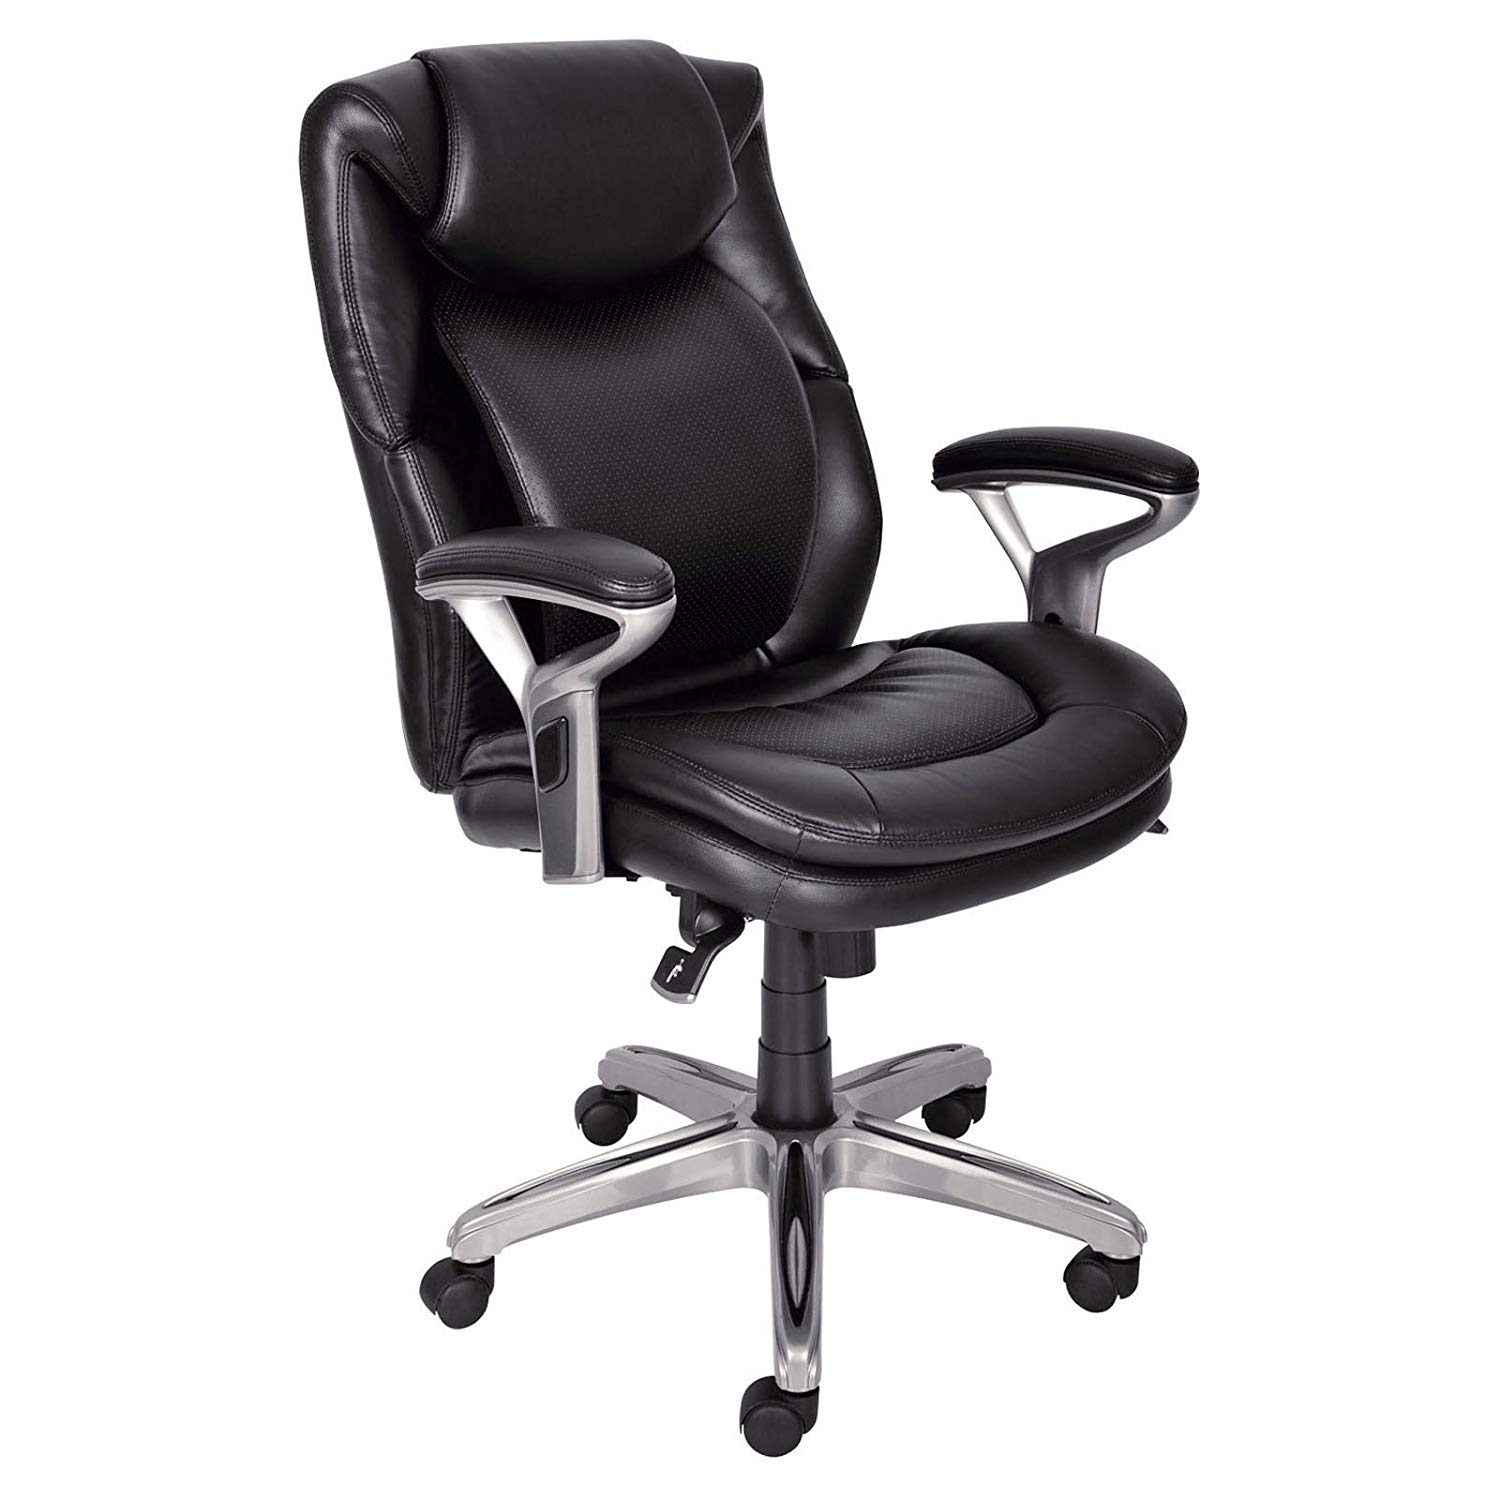 Mid-Back Office Chair Bonded Leather, Smooth Black, Soft and Supple Upholstery in Eco-Friendly Bonded Leather with Contrast Stitching, Deep, Ergo Layered Body Pillows, Assembly is Required